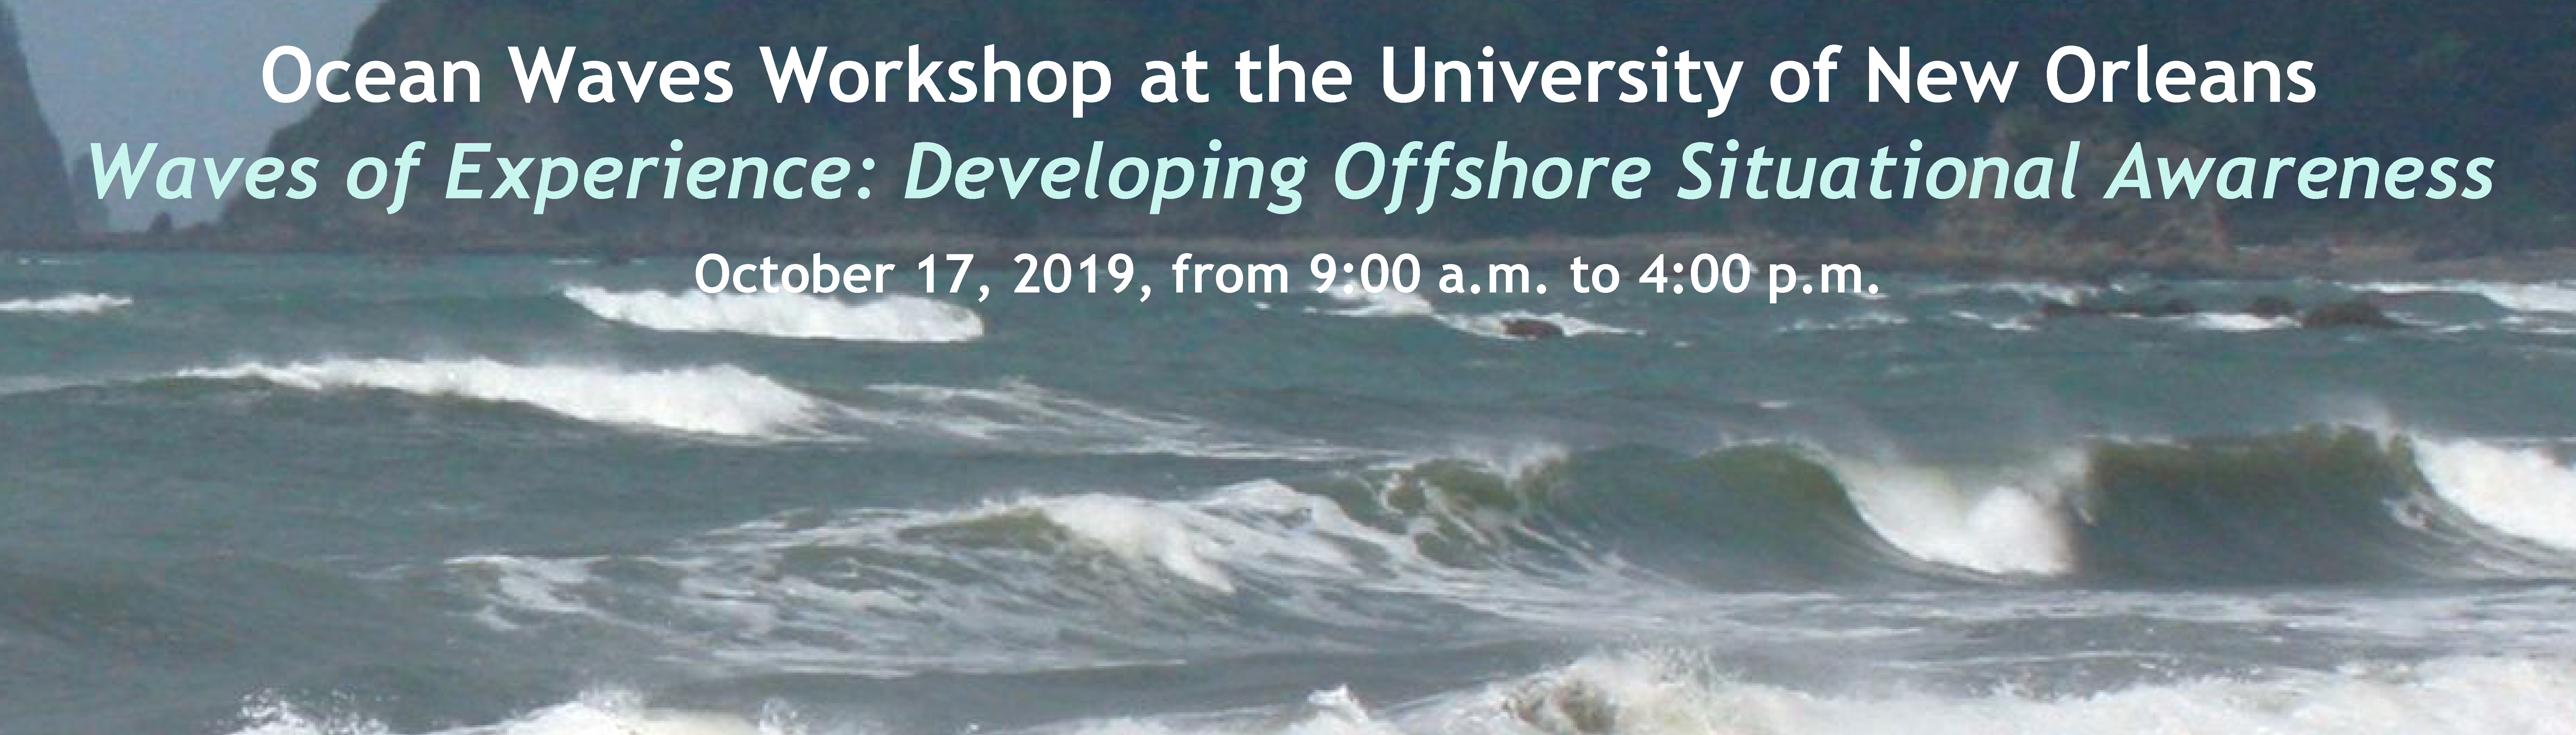 Ocean Waves Workshop 2019